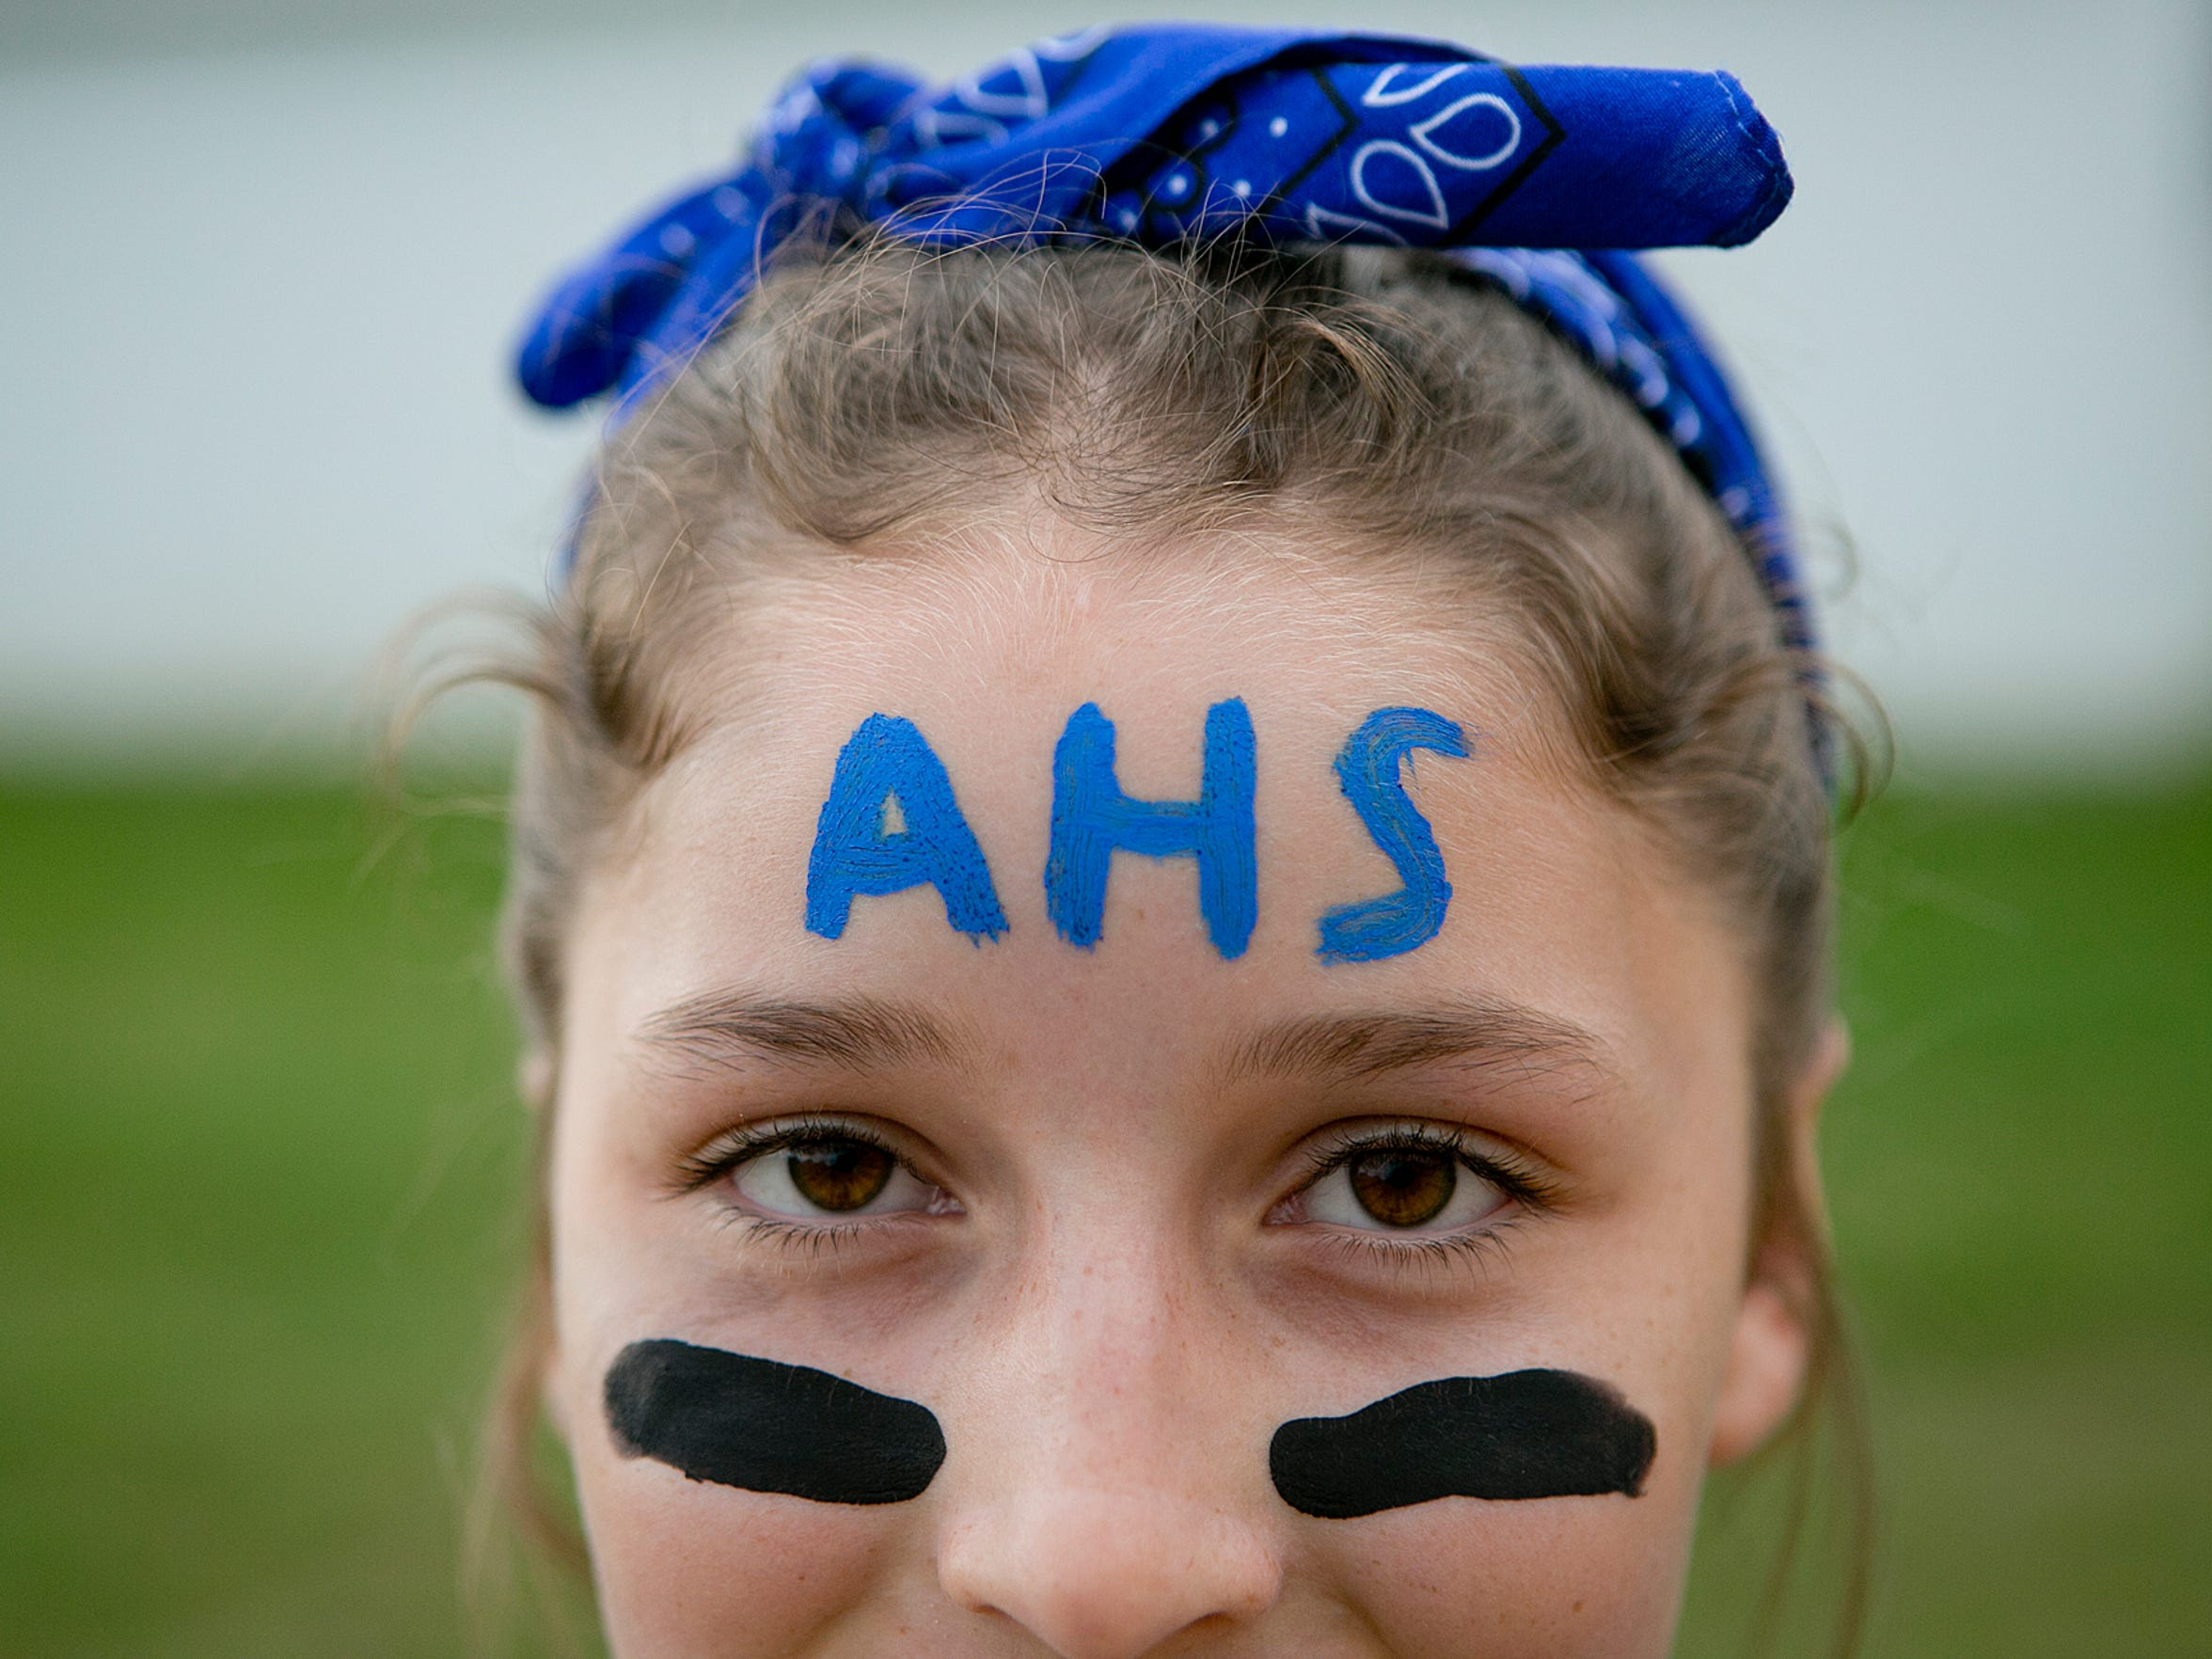 Stephanie Bandy, 11, shows off her Amherst pride with face paint before the non-conference football game against Omro at Amherst High School, Friday, Aug. 21, 2015.